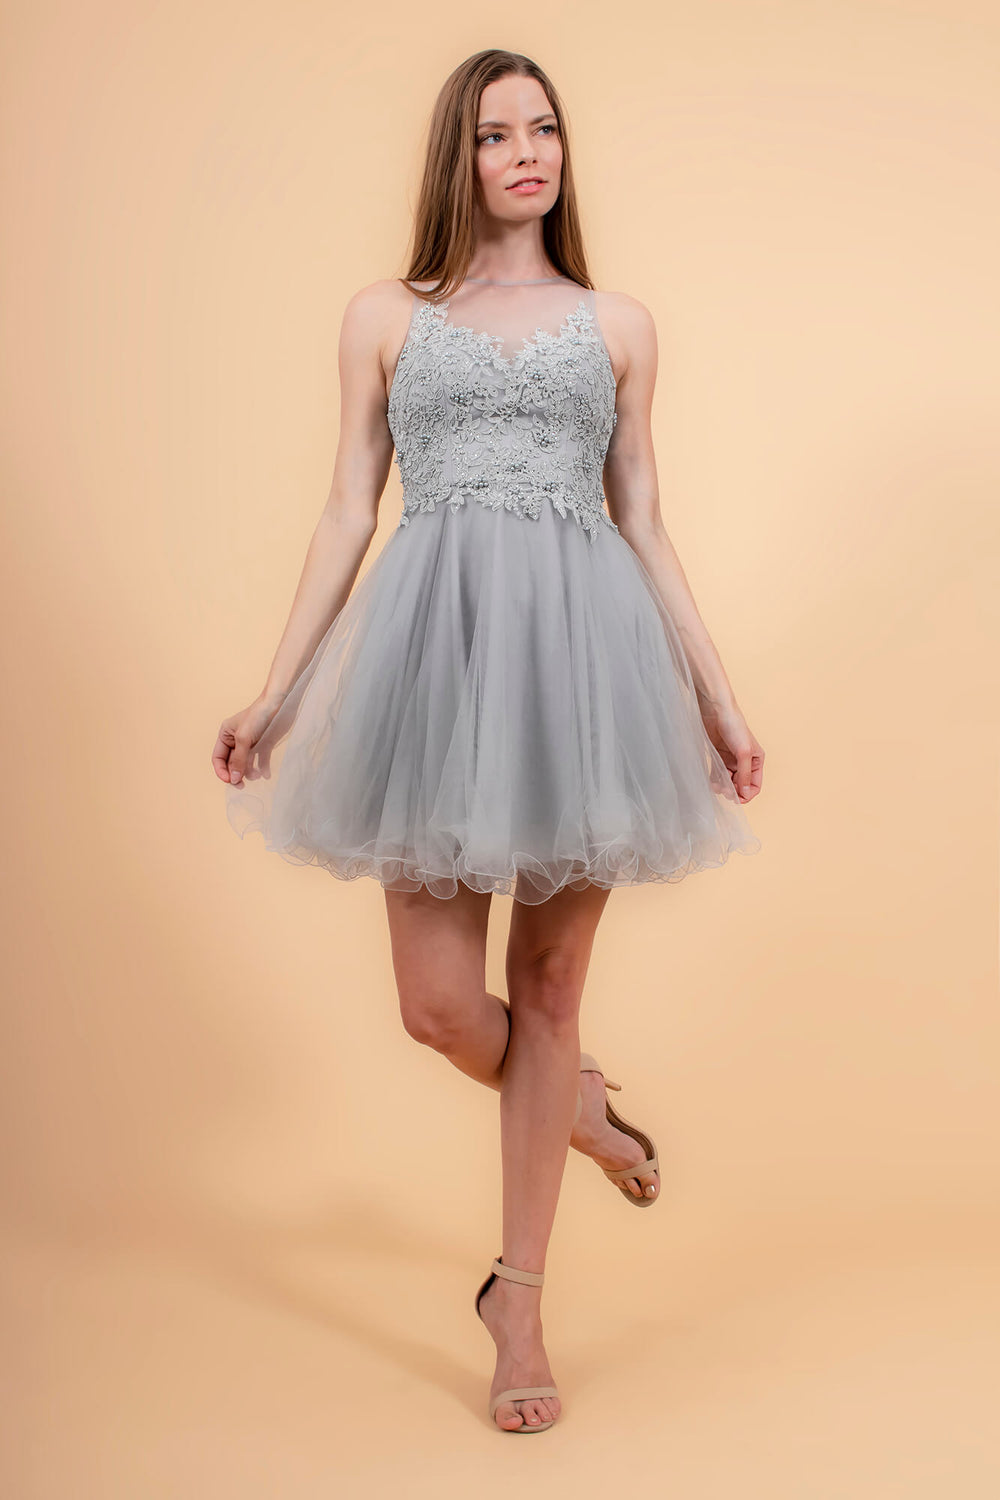 Short Prom Dress Formal Homecoming - The Dress Outlet Silver